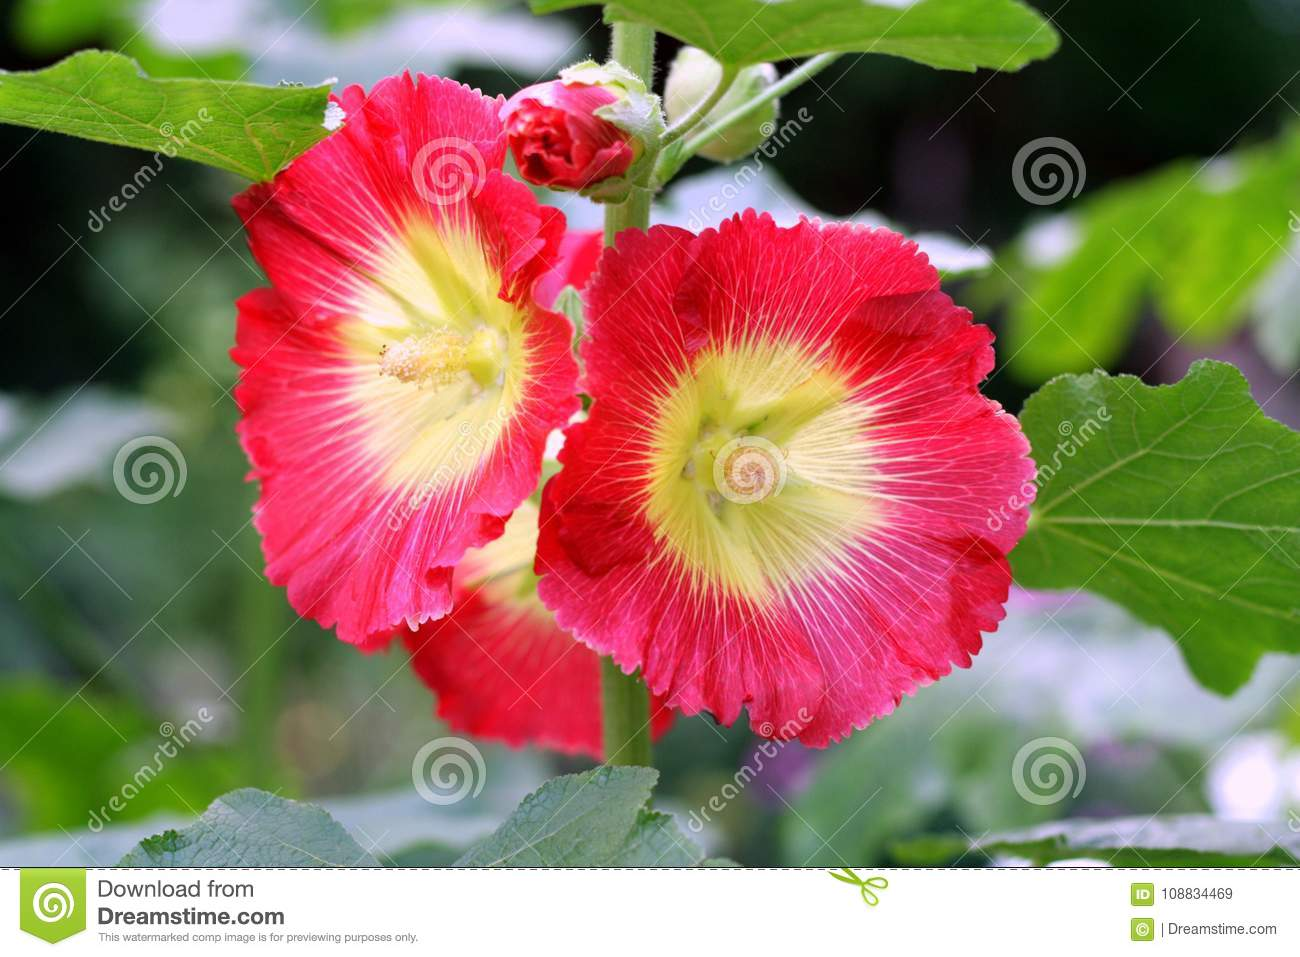 A Flower Of A Garden Mallow Stock Image Image Of Flower Field